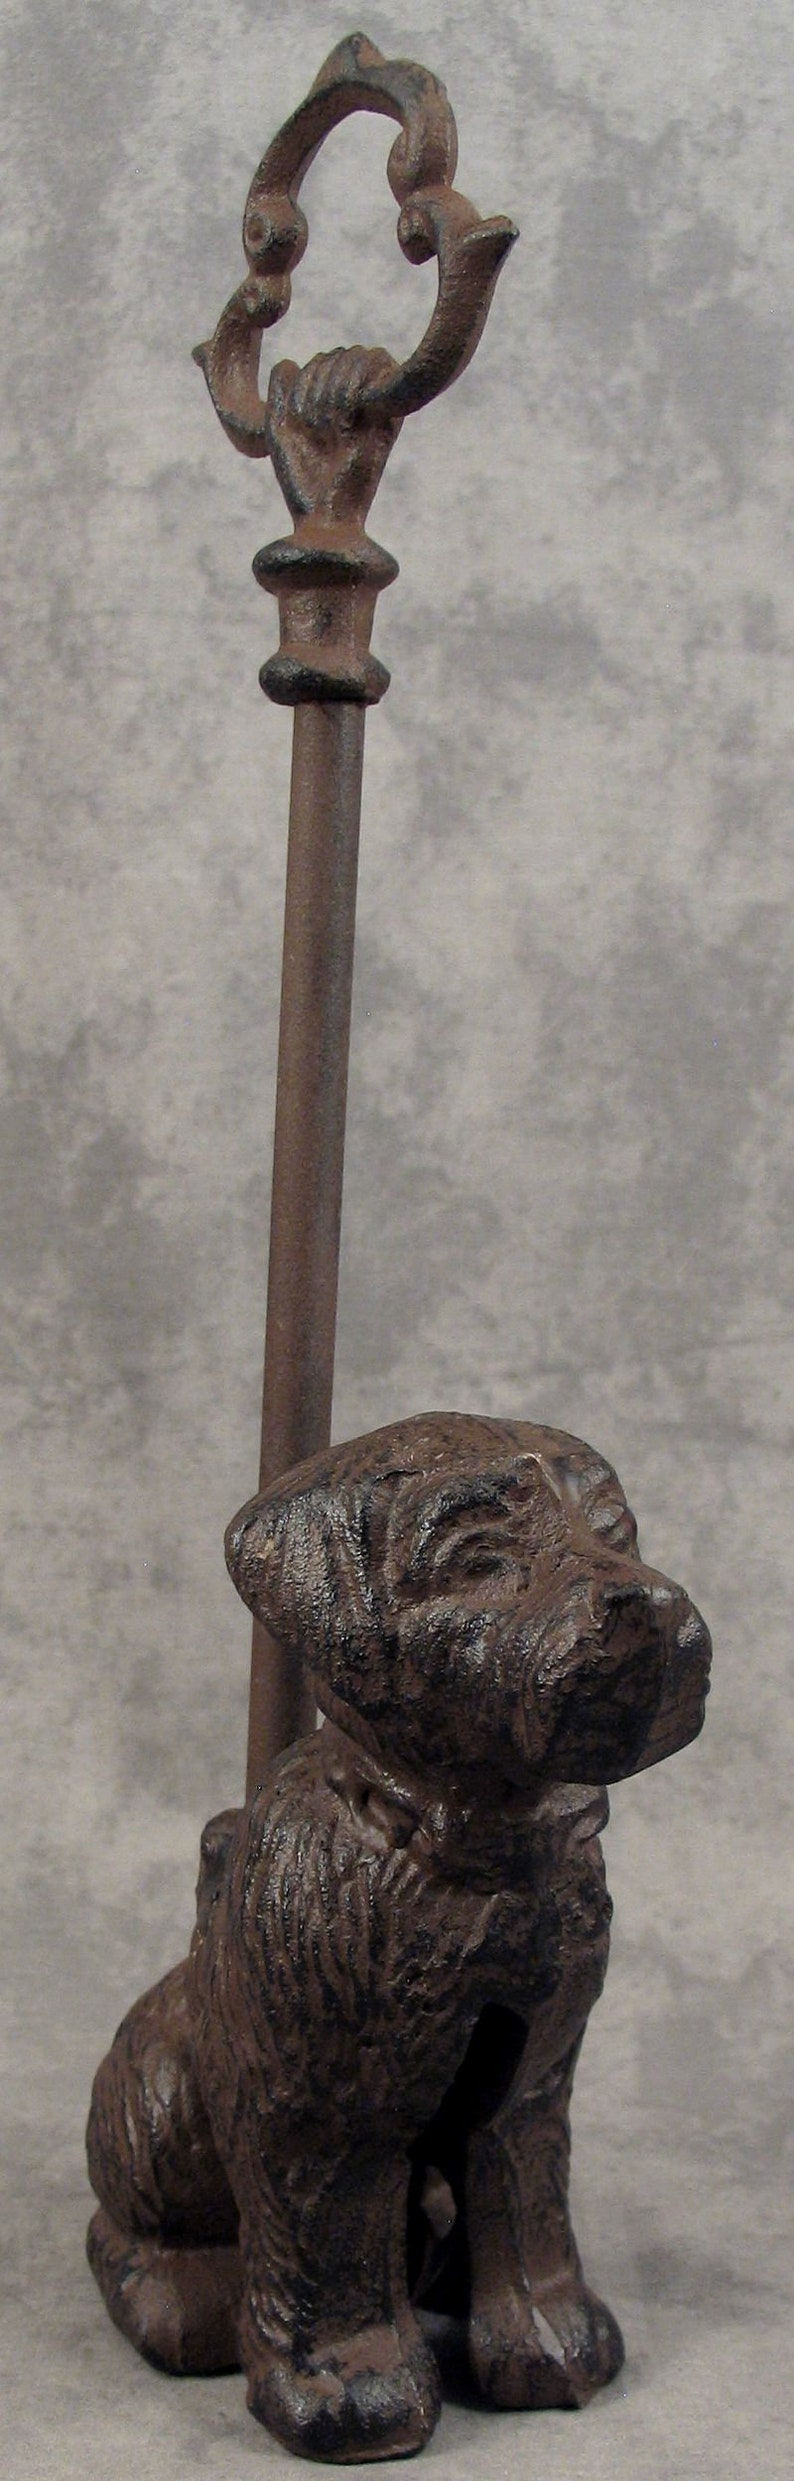 Architectural & Garden Antiques SITTING DOG Cast Iron DOOR PORTER DOORSTOP ~DECORATIVE CARRY HANDLE~